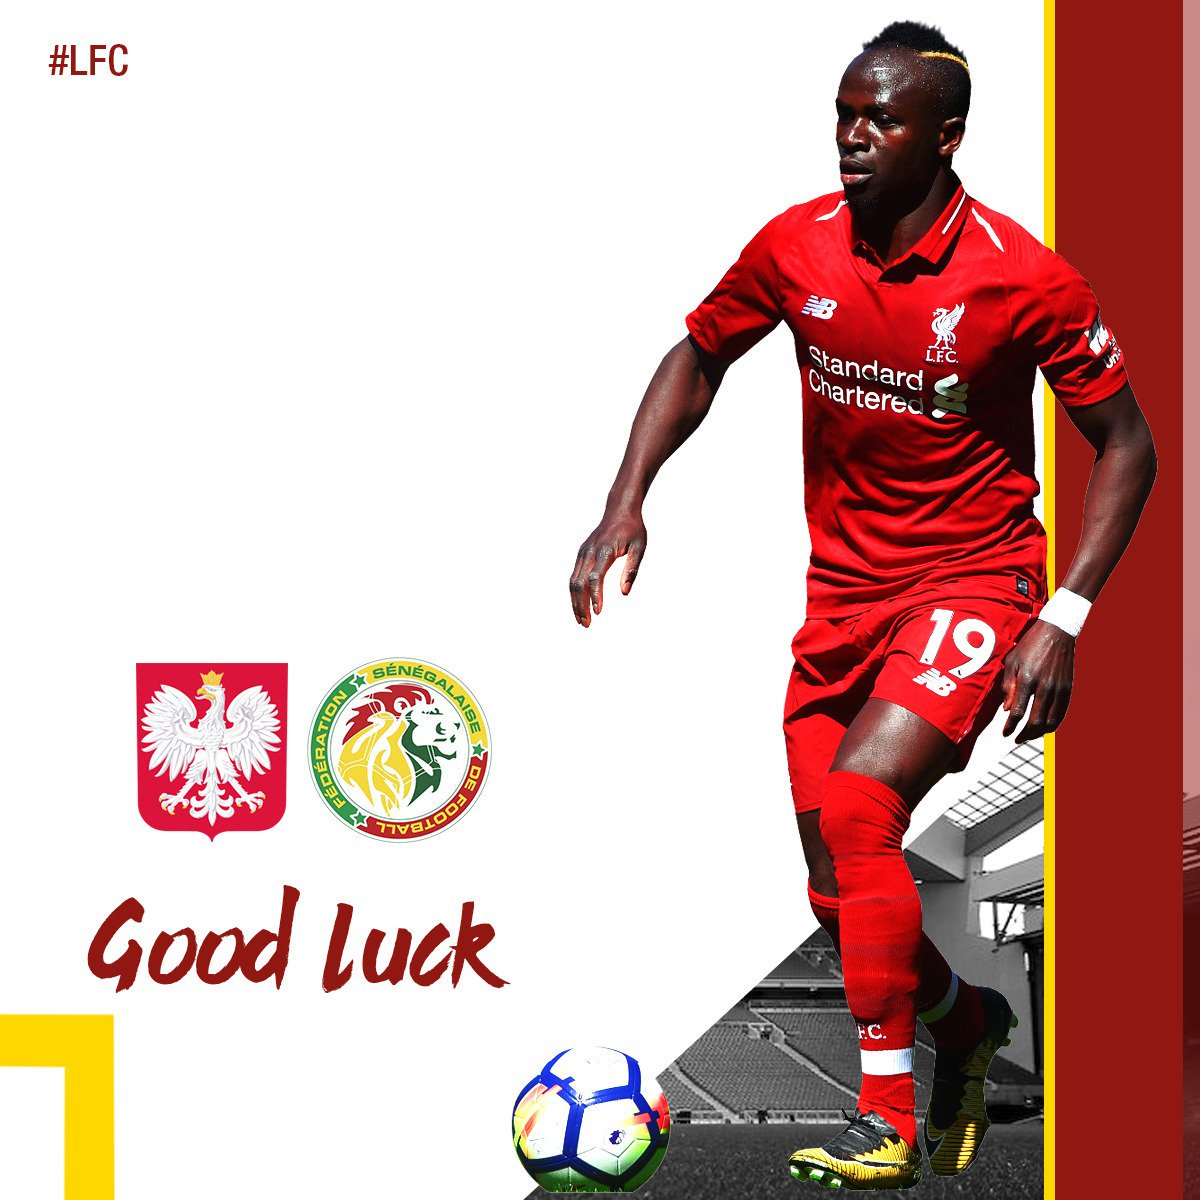 RT @LFC: Good luck to Sadio Mane and @MoSalah today. 👊👊  🇵🇱 vs 🇸🇳 (4pm BST) 🇷🇺 vs 🇪🇬 (7pm BST)  #WorldCup #LFC...